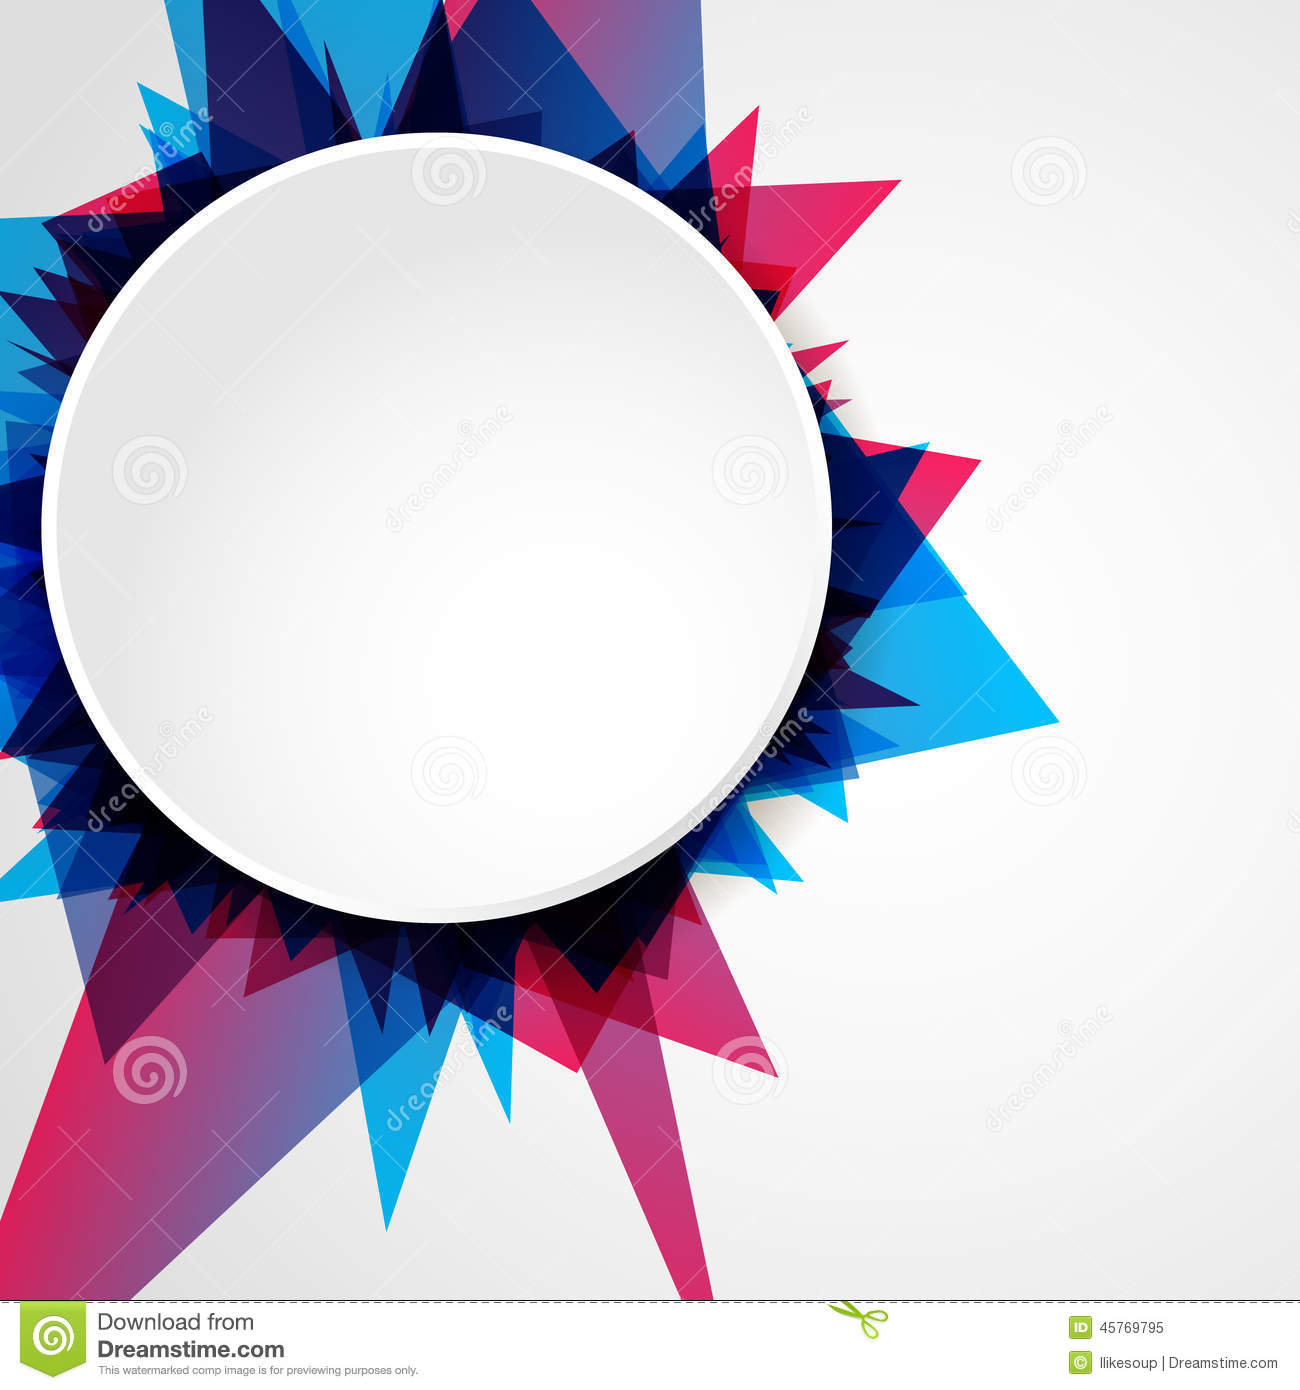 abstract bright blue and pink geometric shape with blank circle